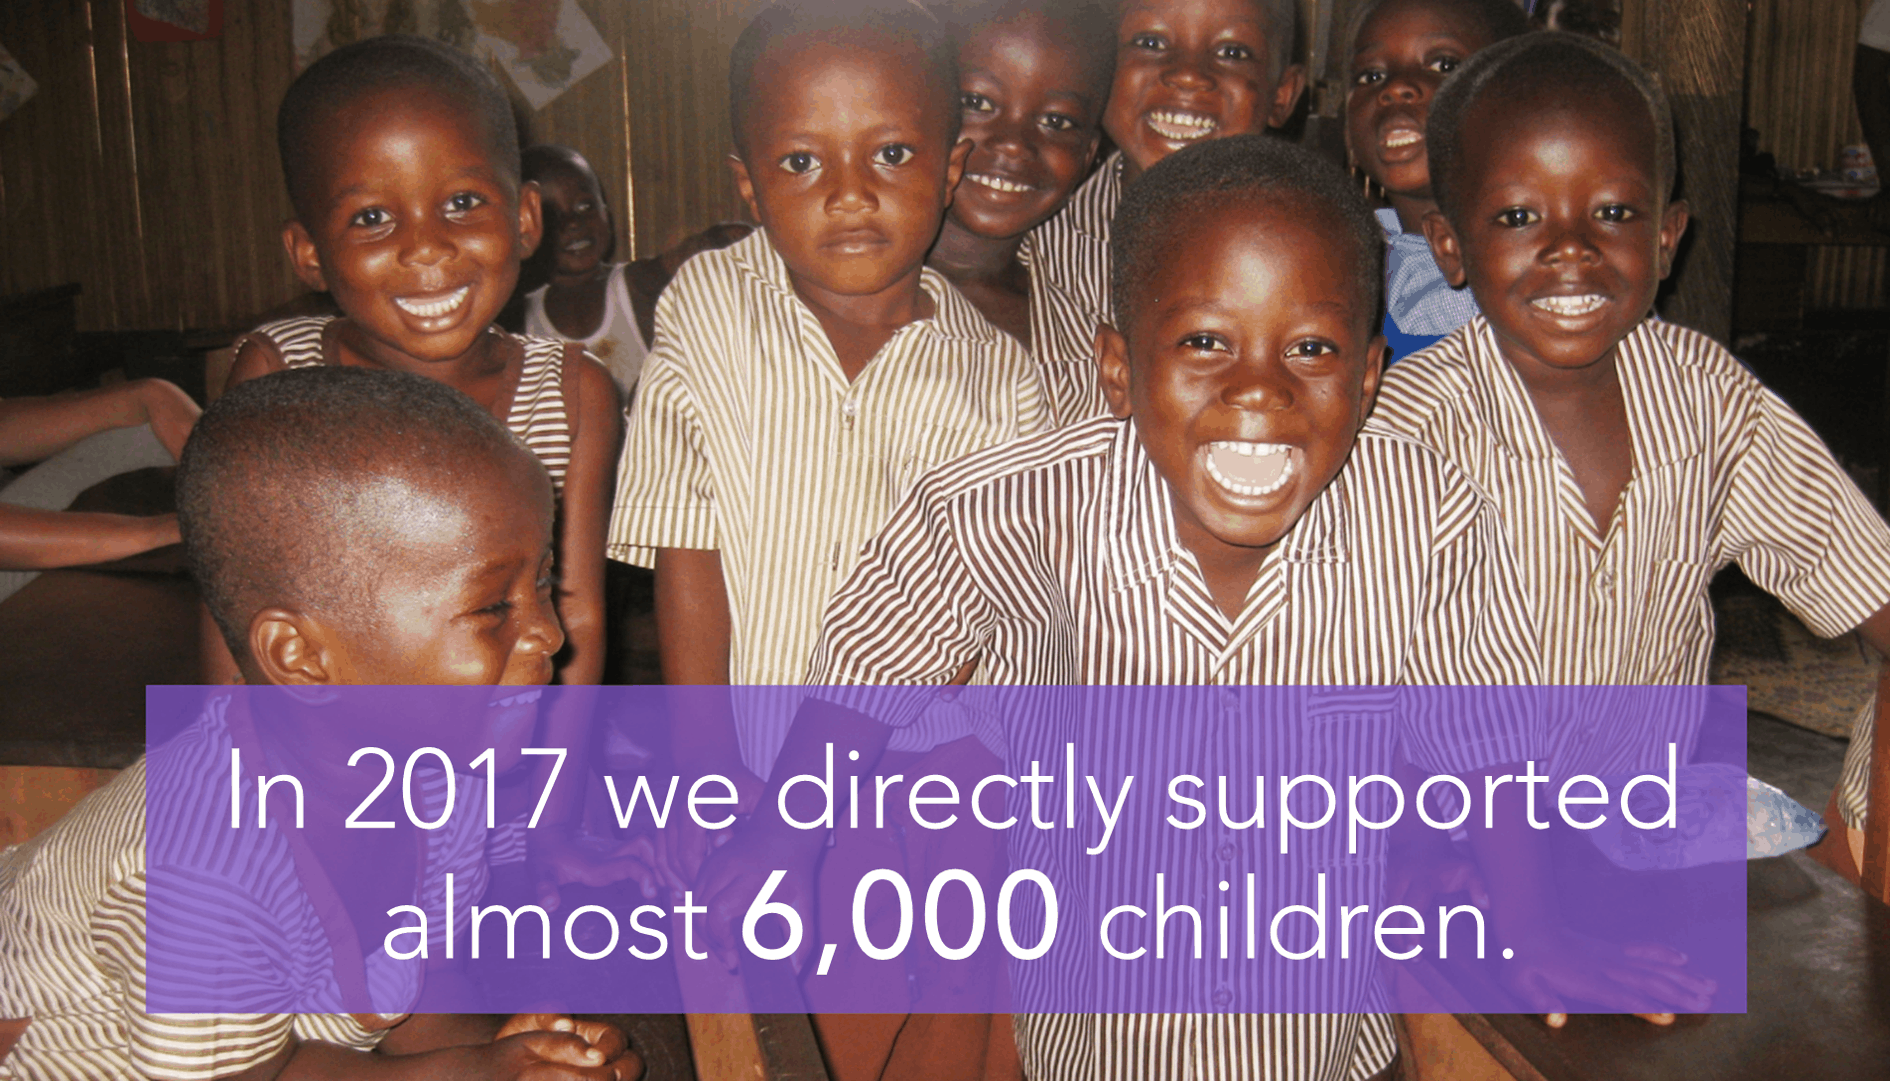 In 2017 we directly supported almost 6,000 children